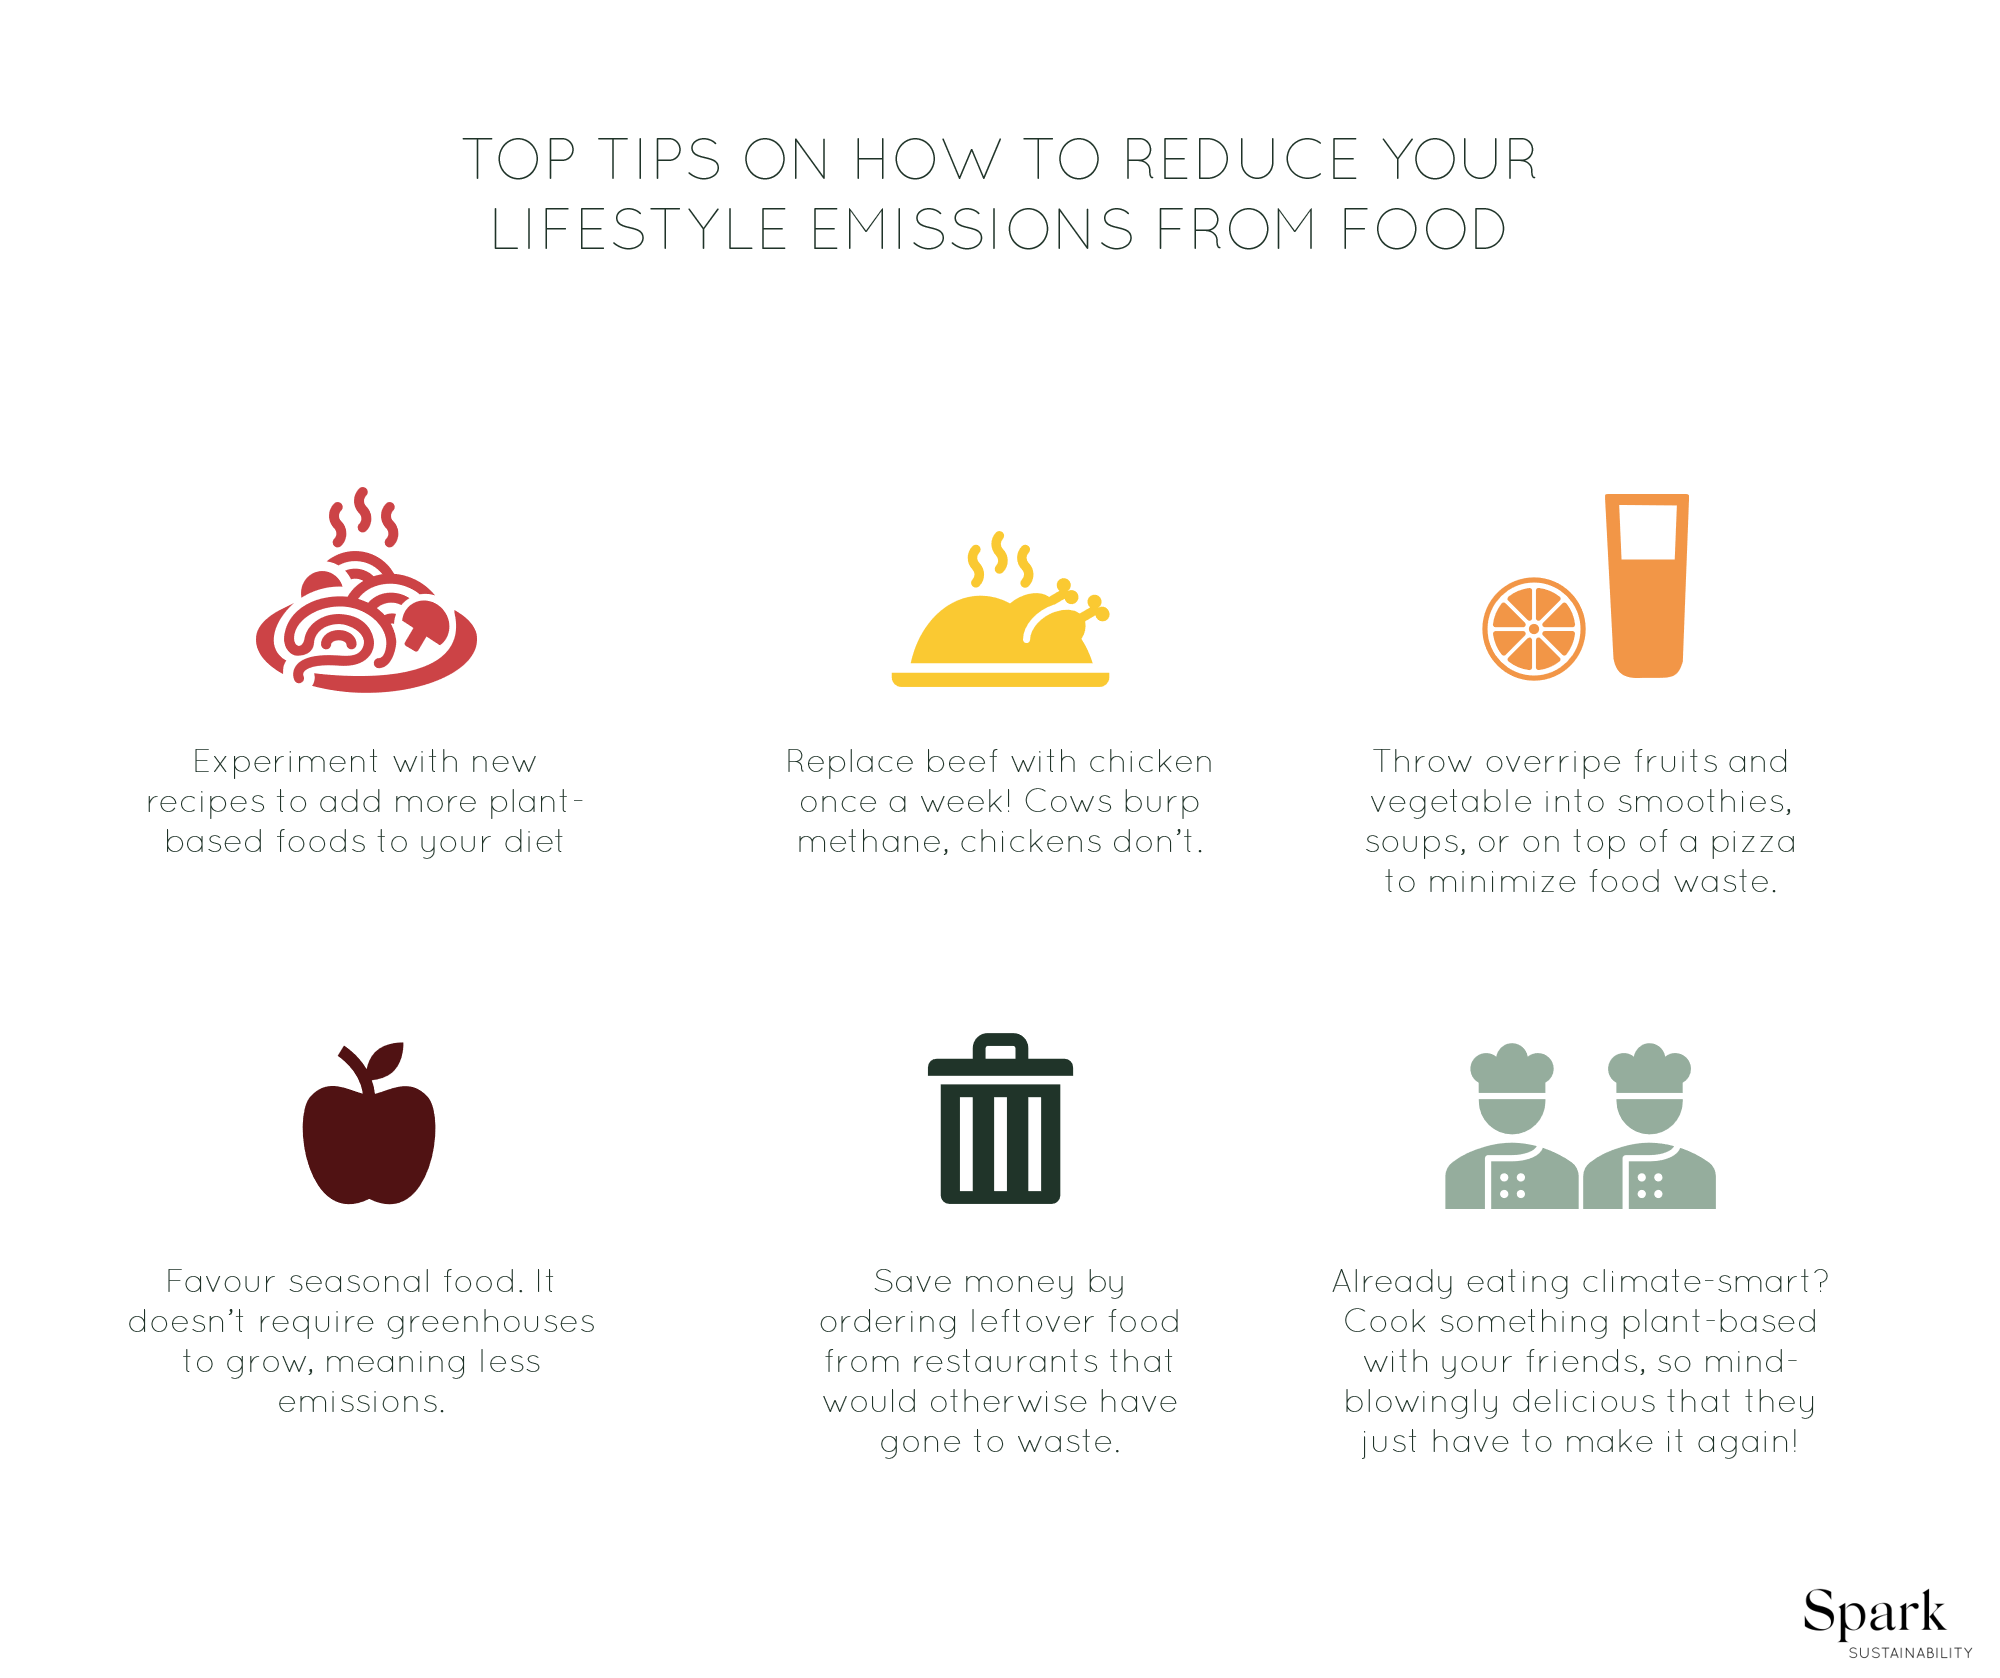 6 tips on how to reduce your lifestyle emissions from food